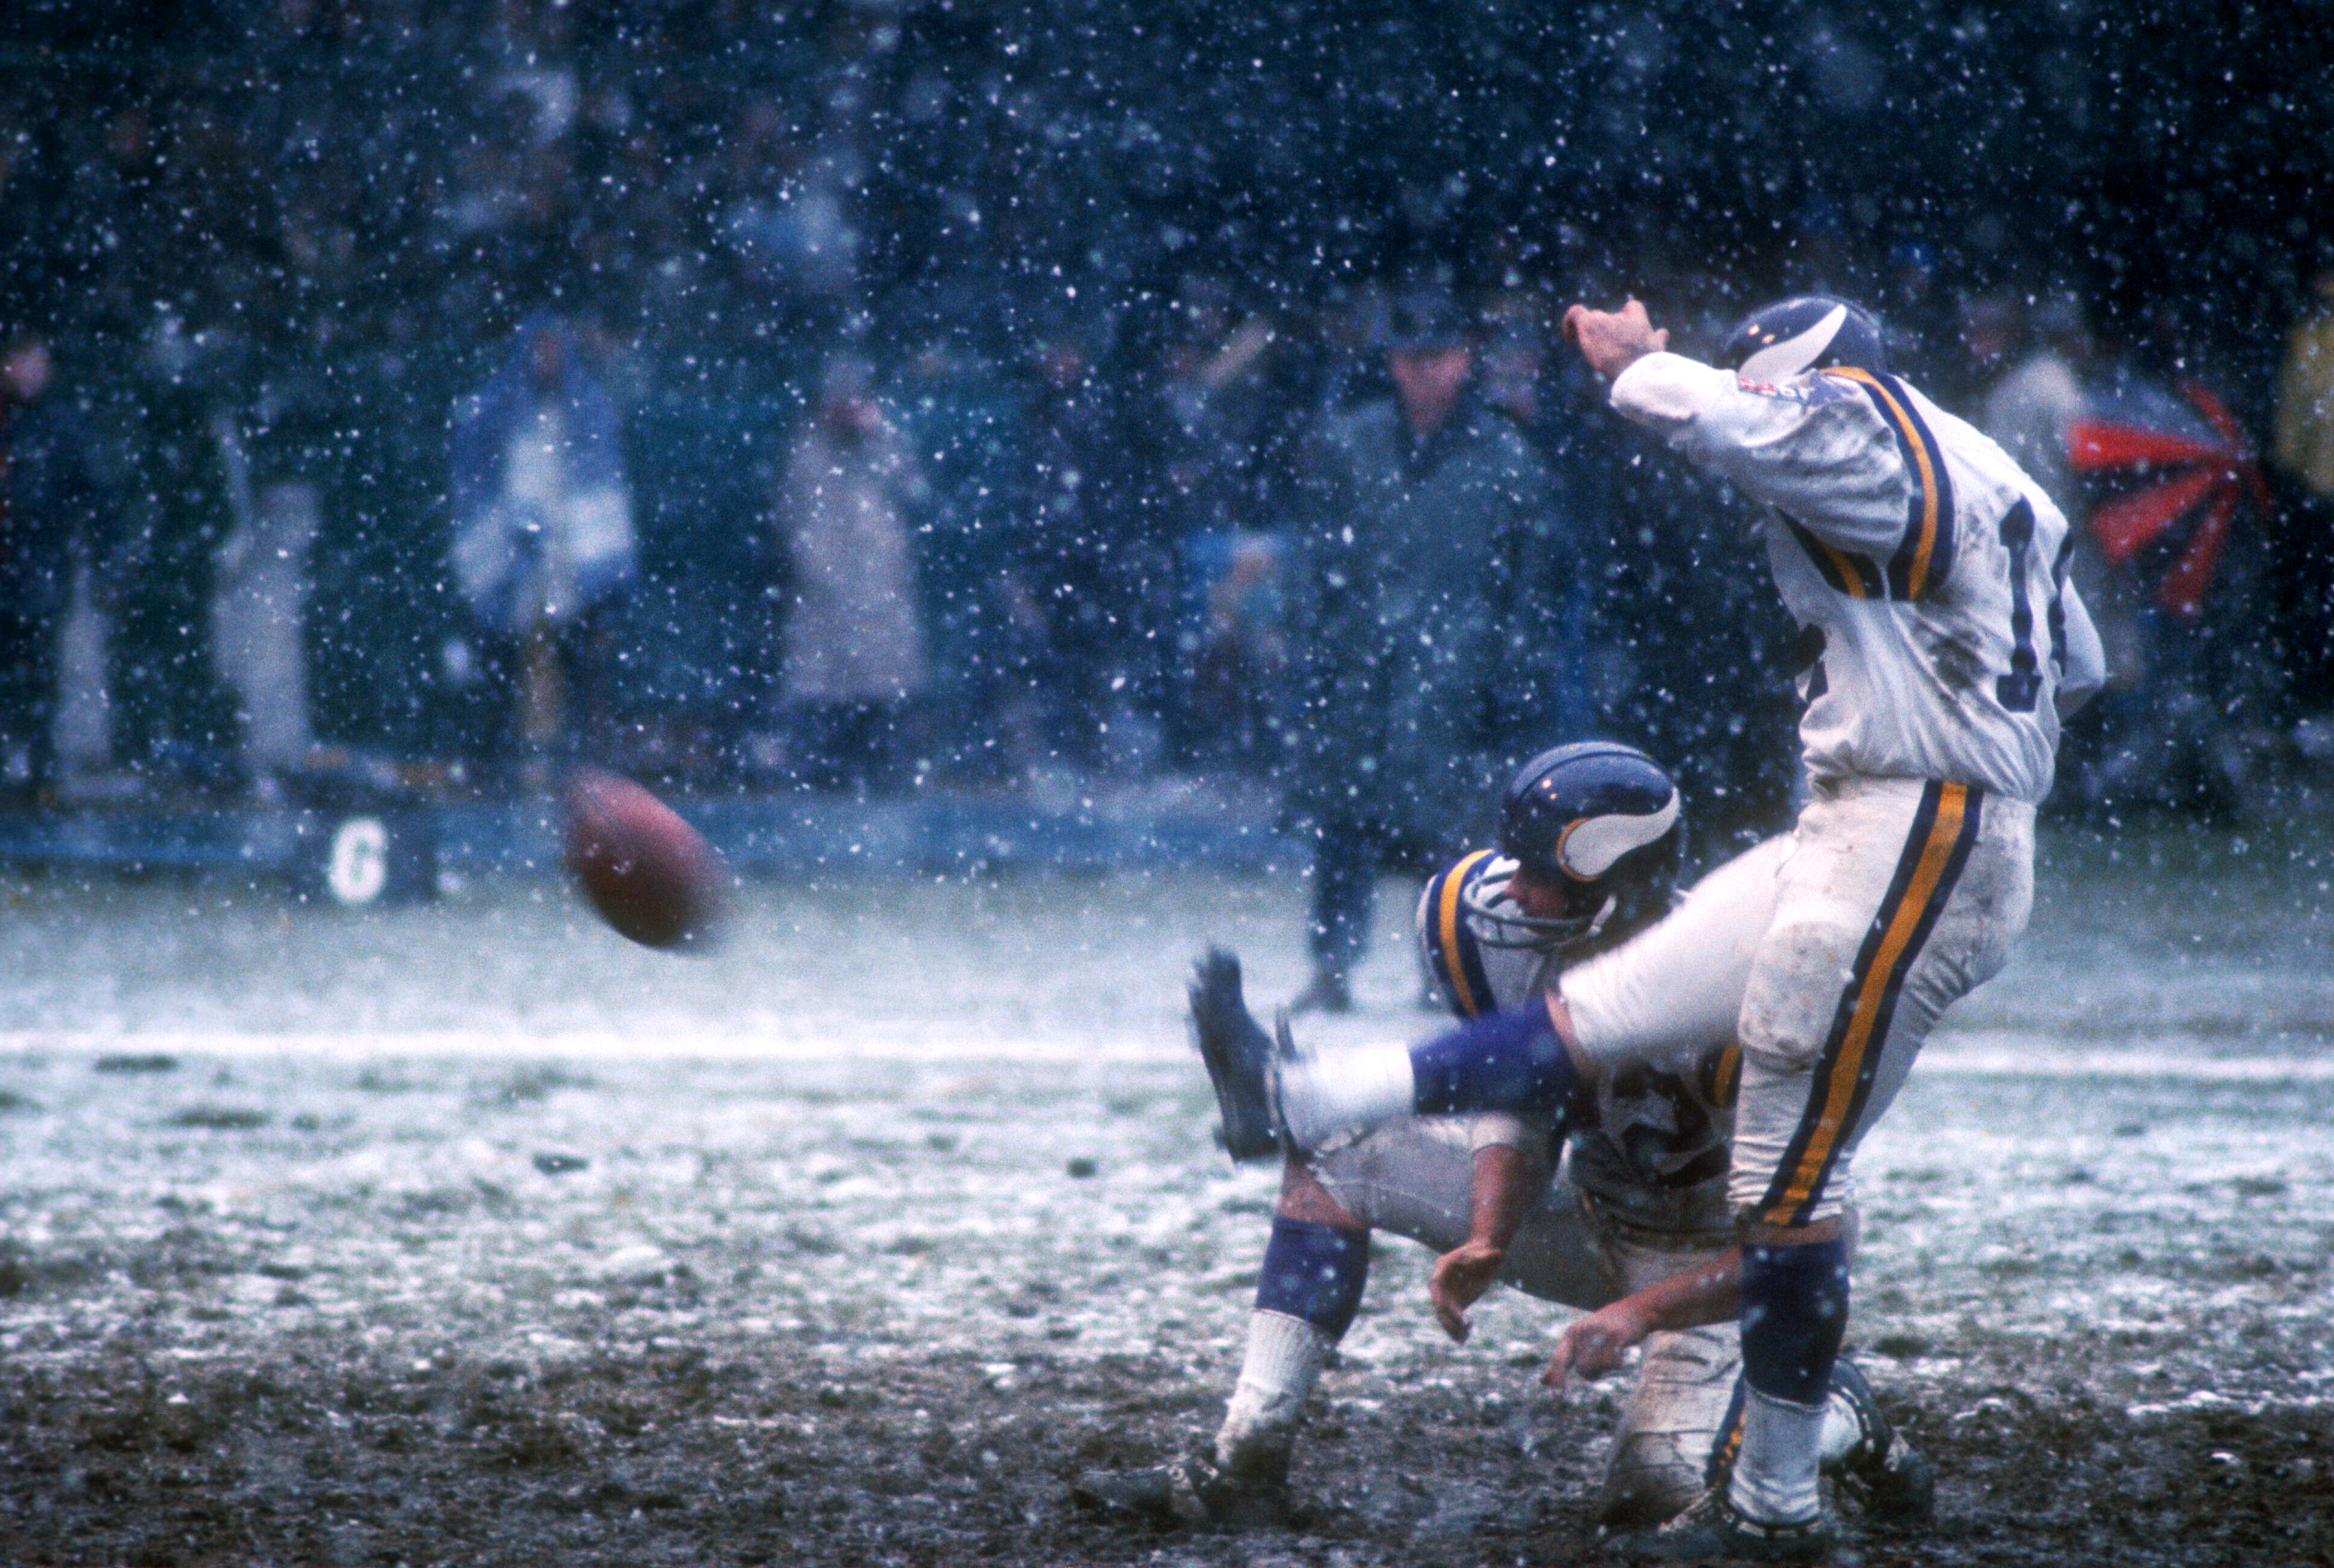 Fred Cox kicking for the Vikings against the Detroit Lions on November 27, 1969 at Tiger Stadium in Detroit, Minnesota. (Photo by Martin Mills/Getty Images)